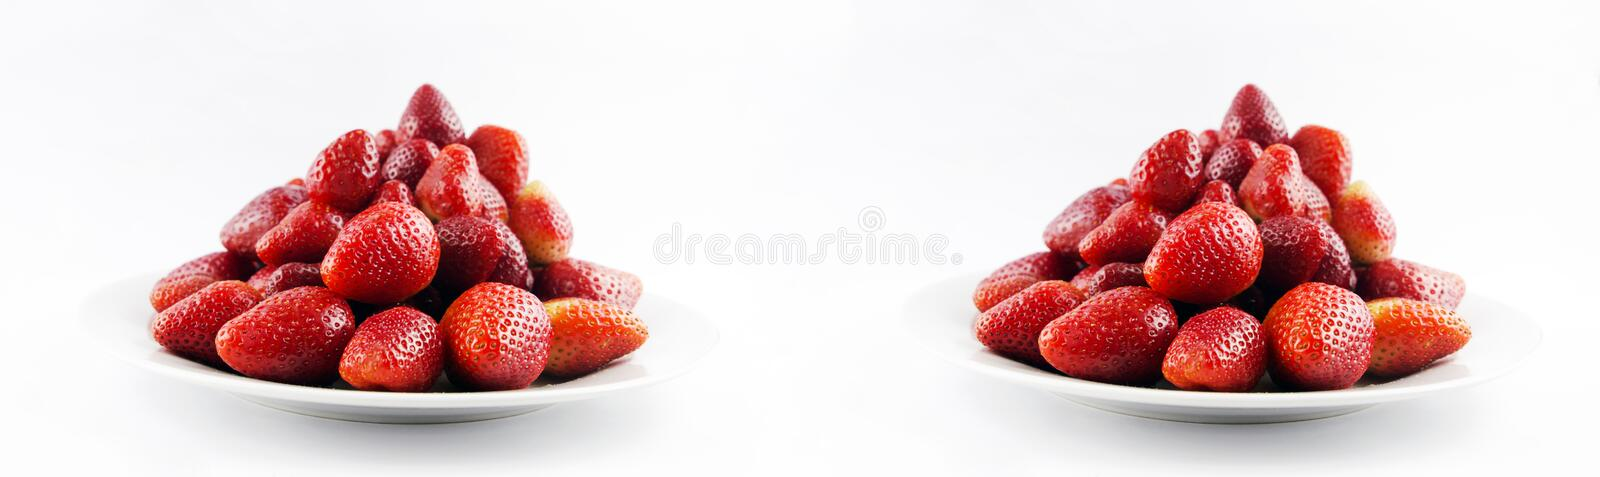 Tasty fresh red strawberry stock images